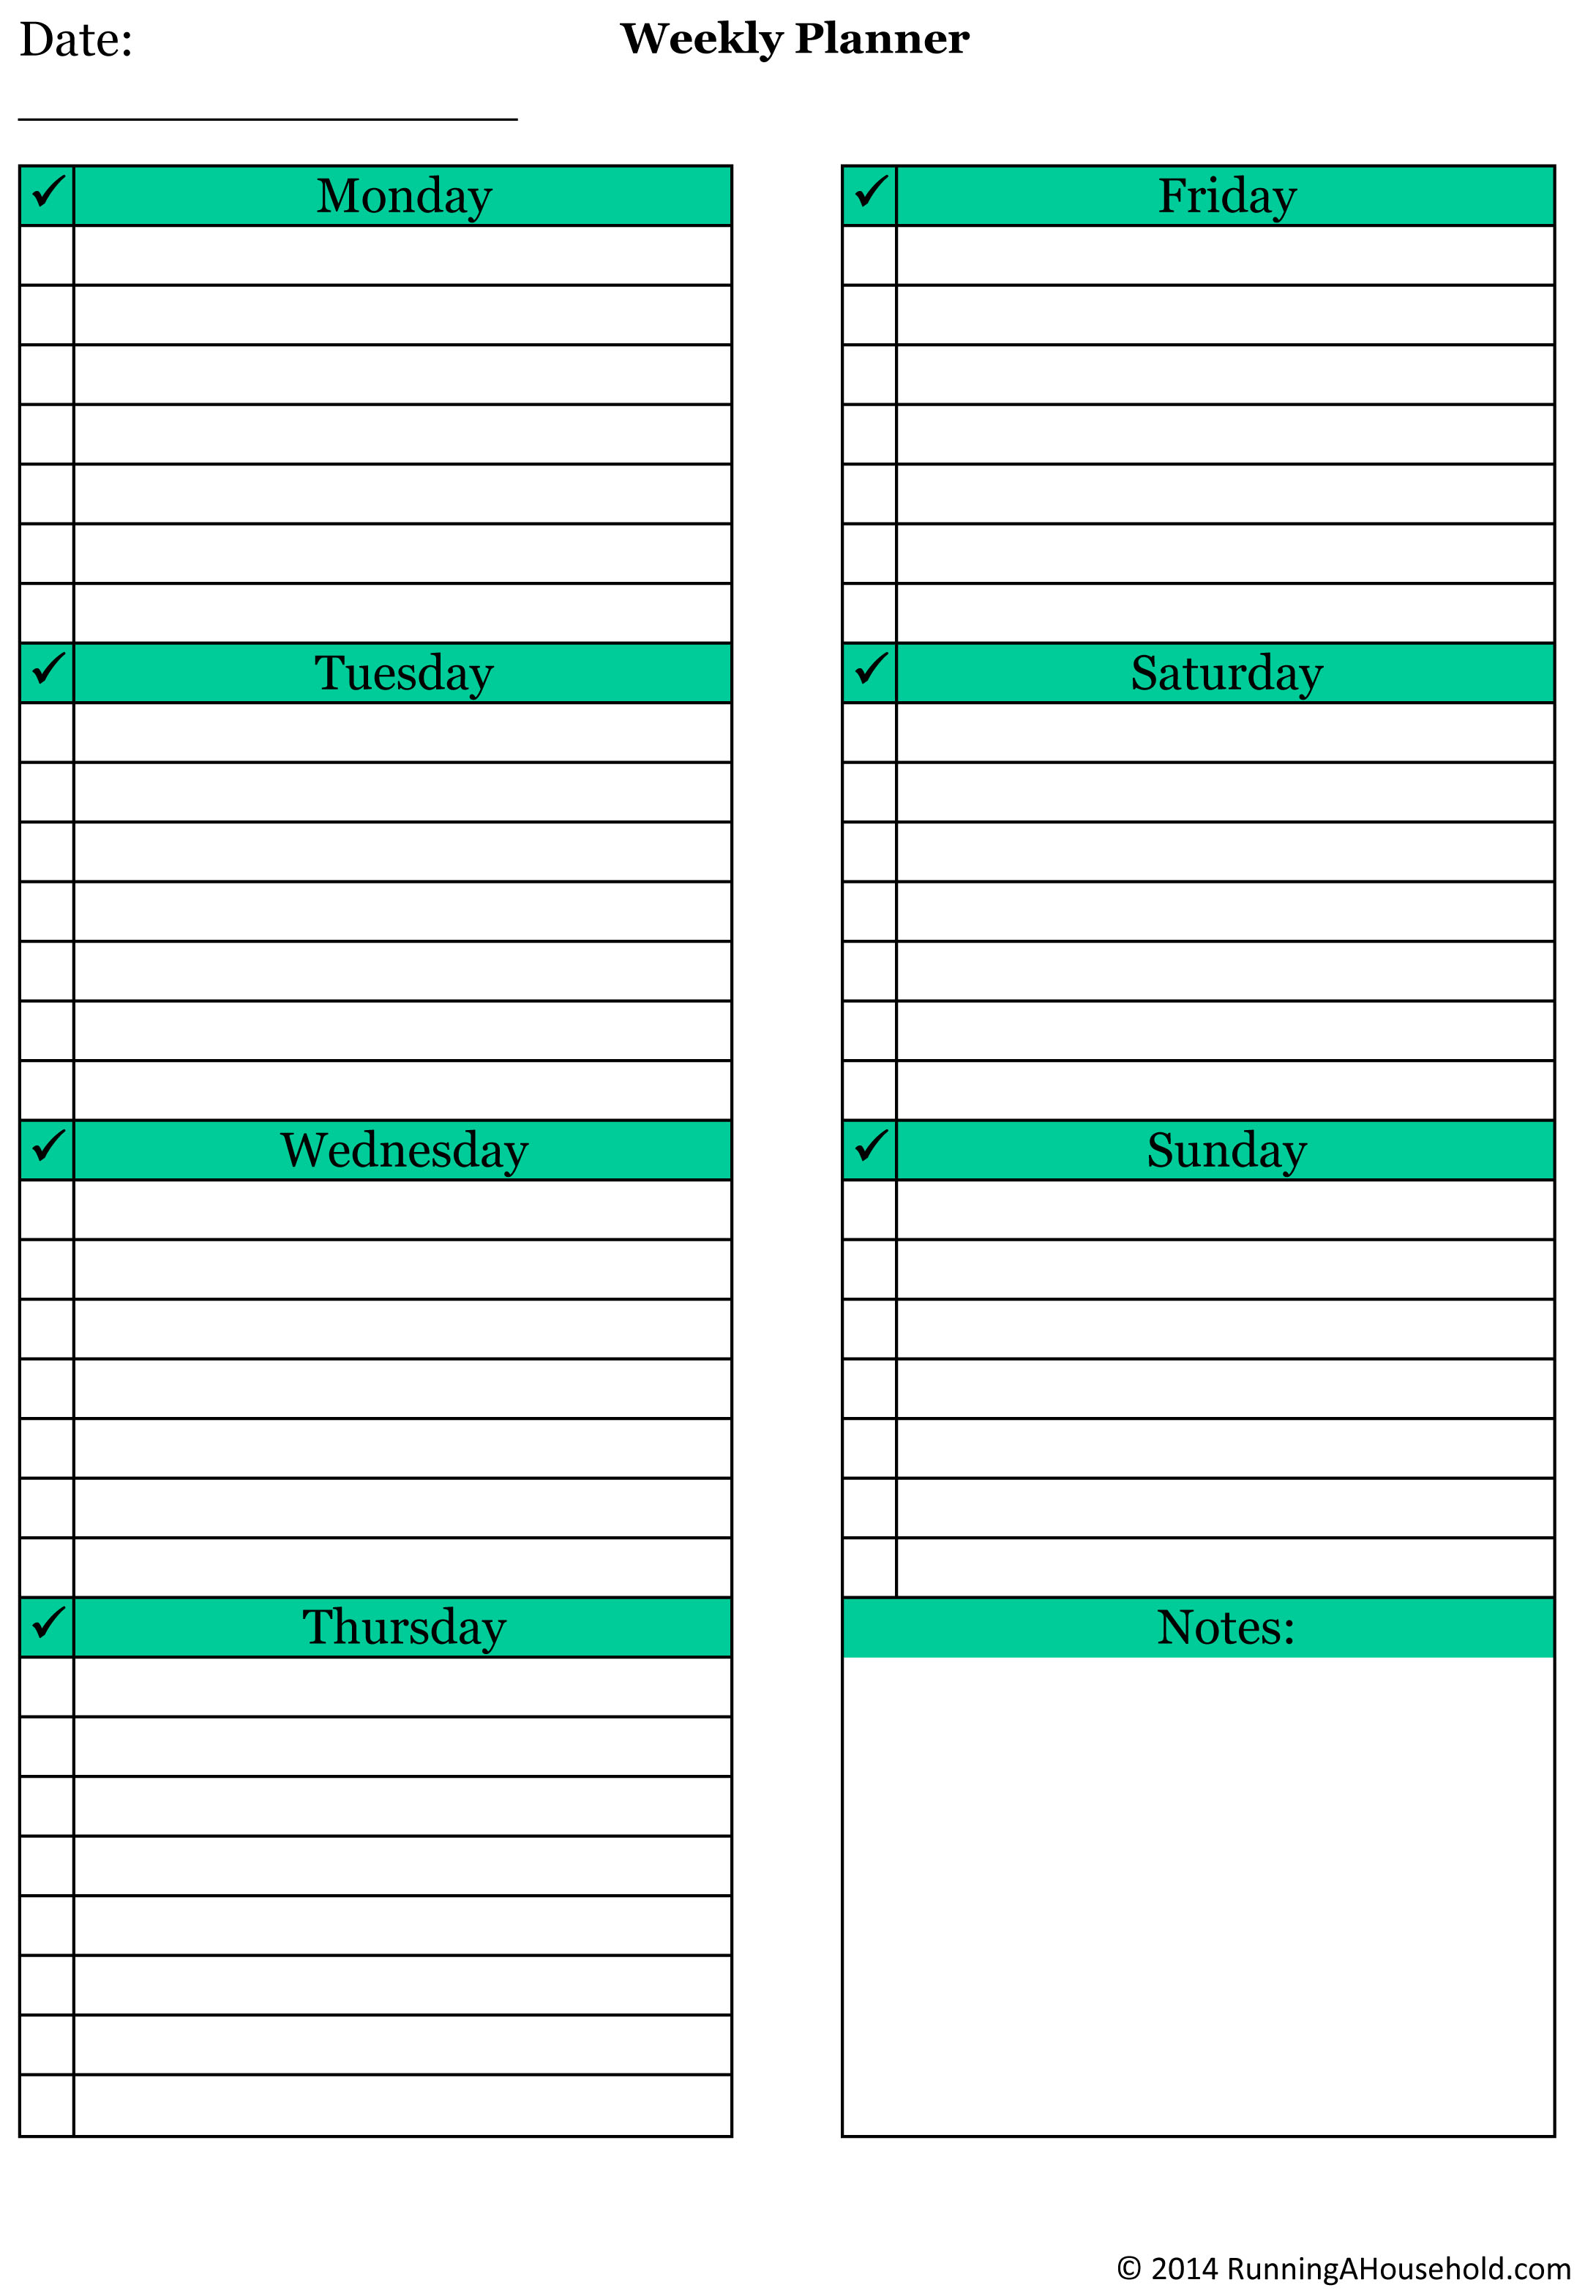 free printable charts and checklists. Weekly Planner.xlsx Free Printable Charts And Checklists T